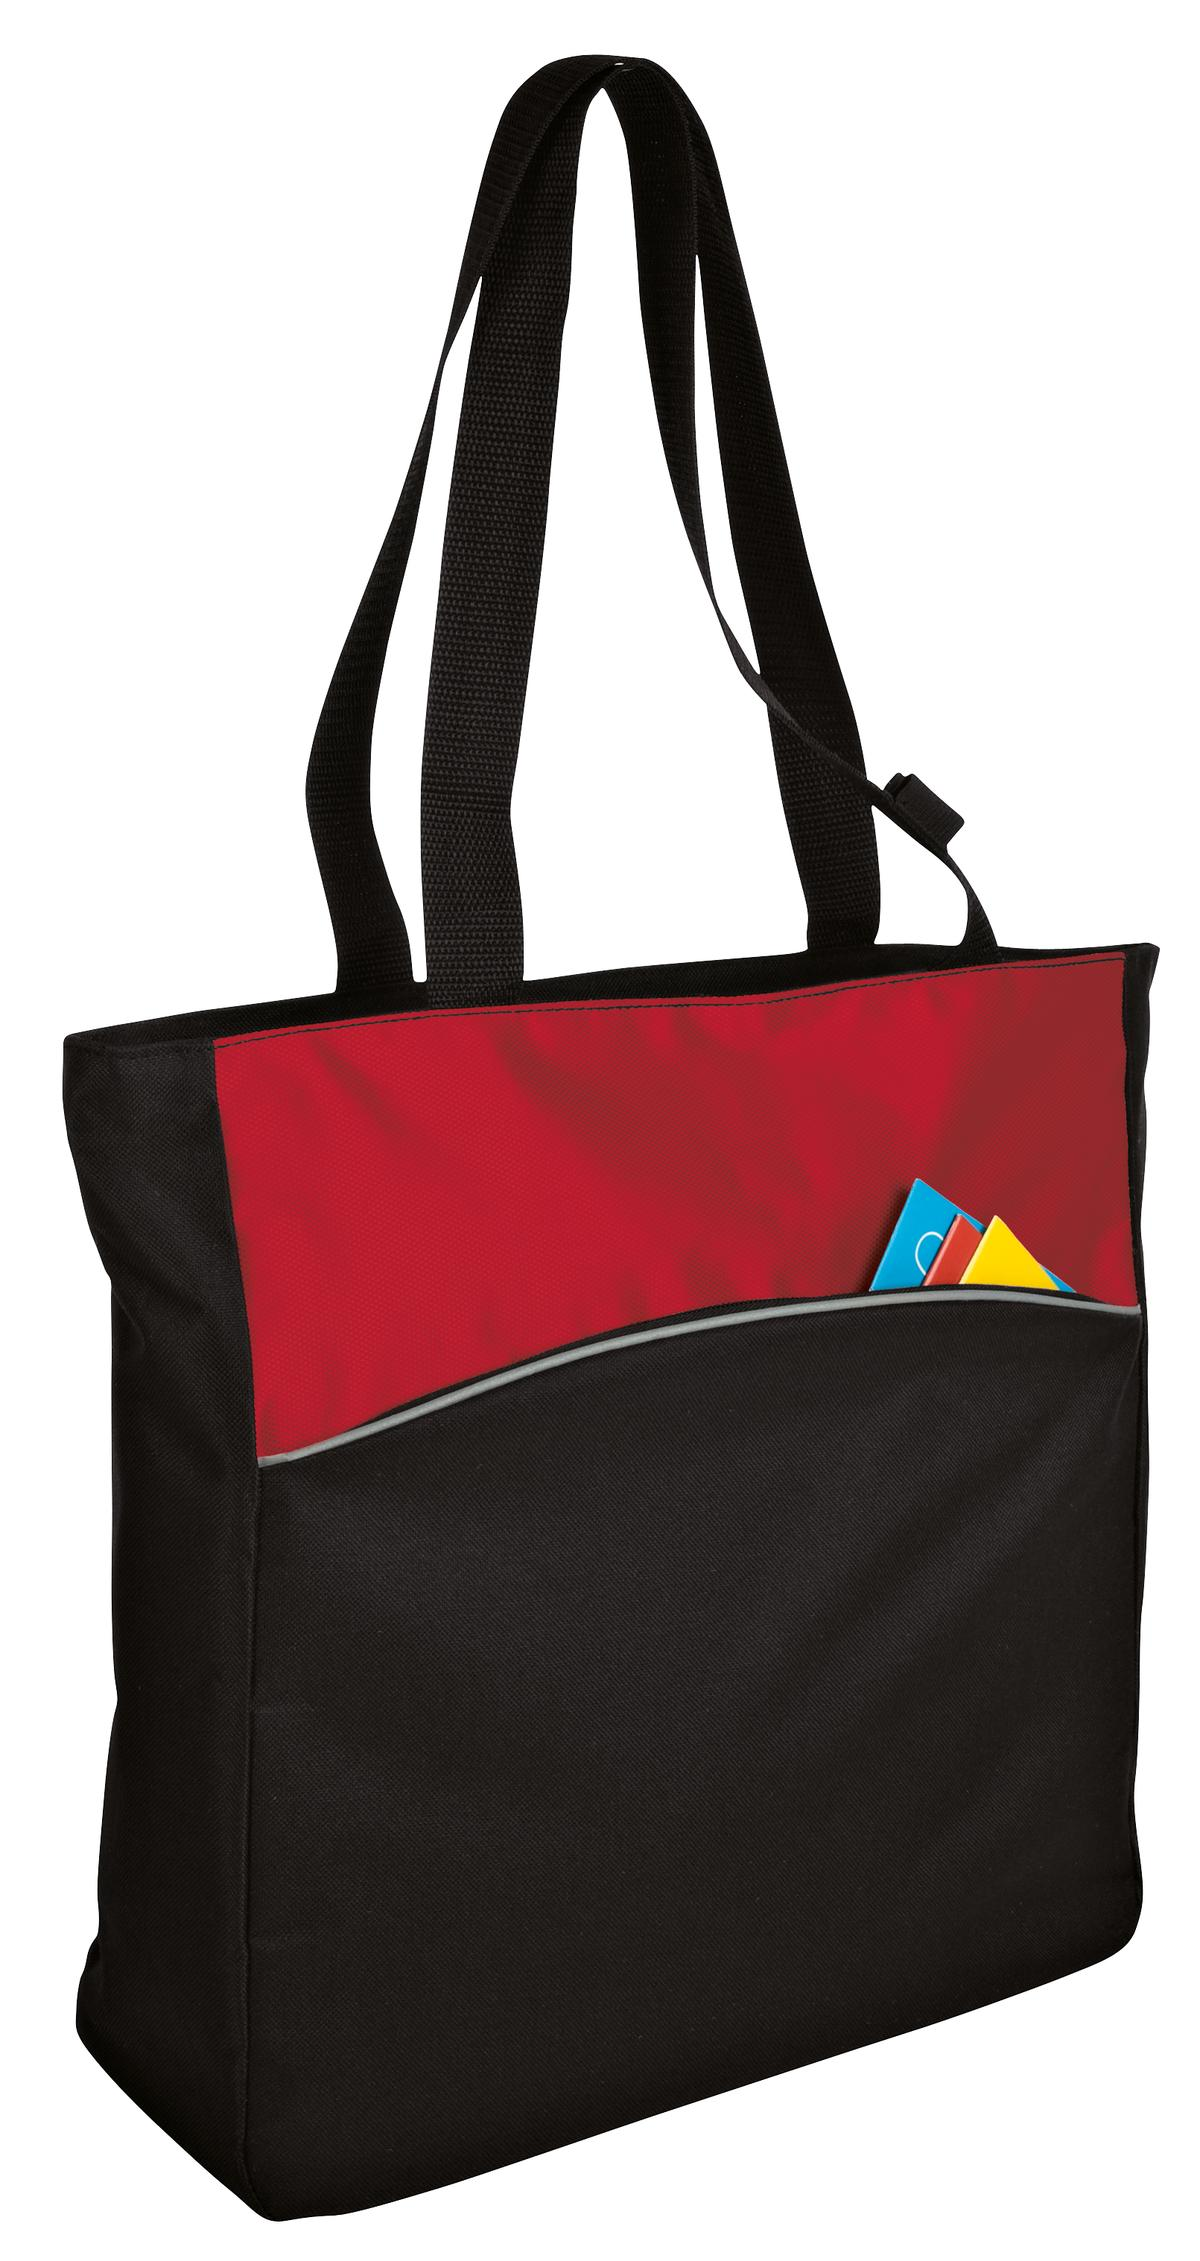 Port Authority ®  - Two-Tone Colorblock Tote. B1510 - Engine Red/ Black